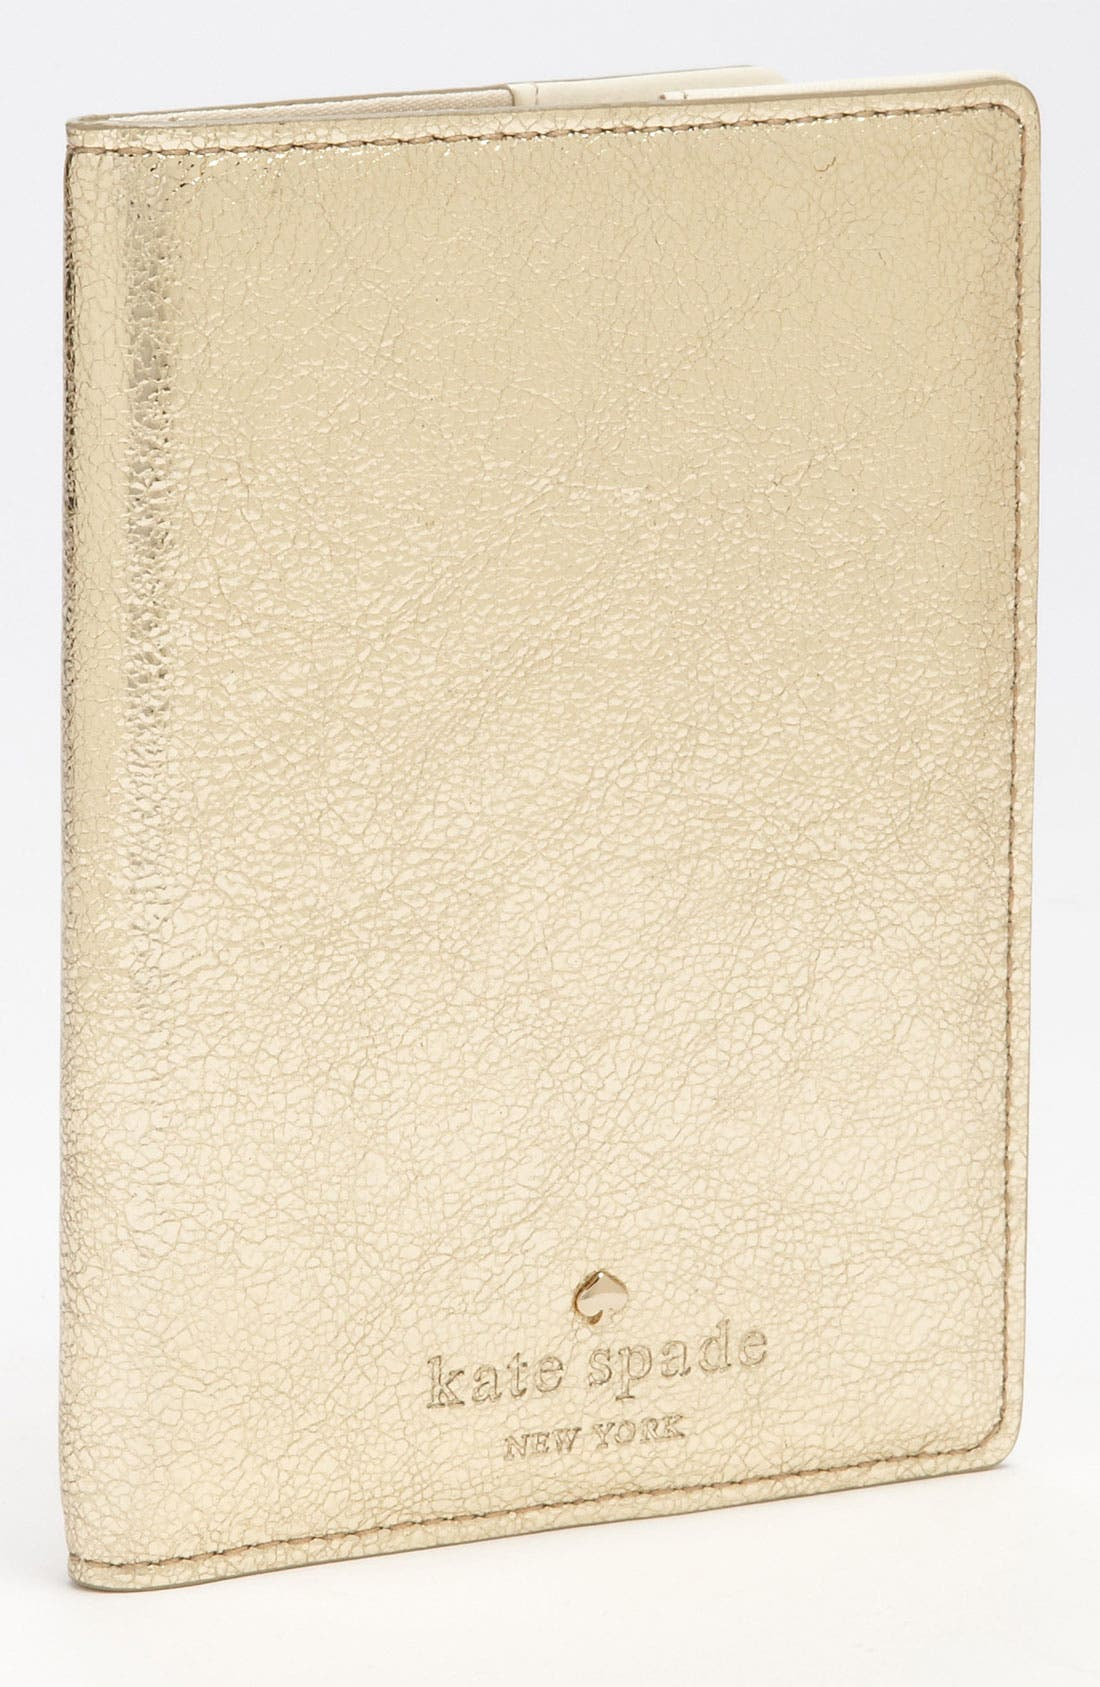 Main Image - kate spade new york 'harrison street' metallic passport case